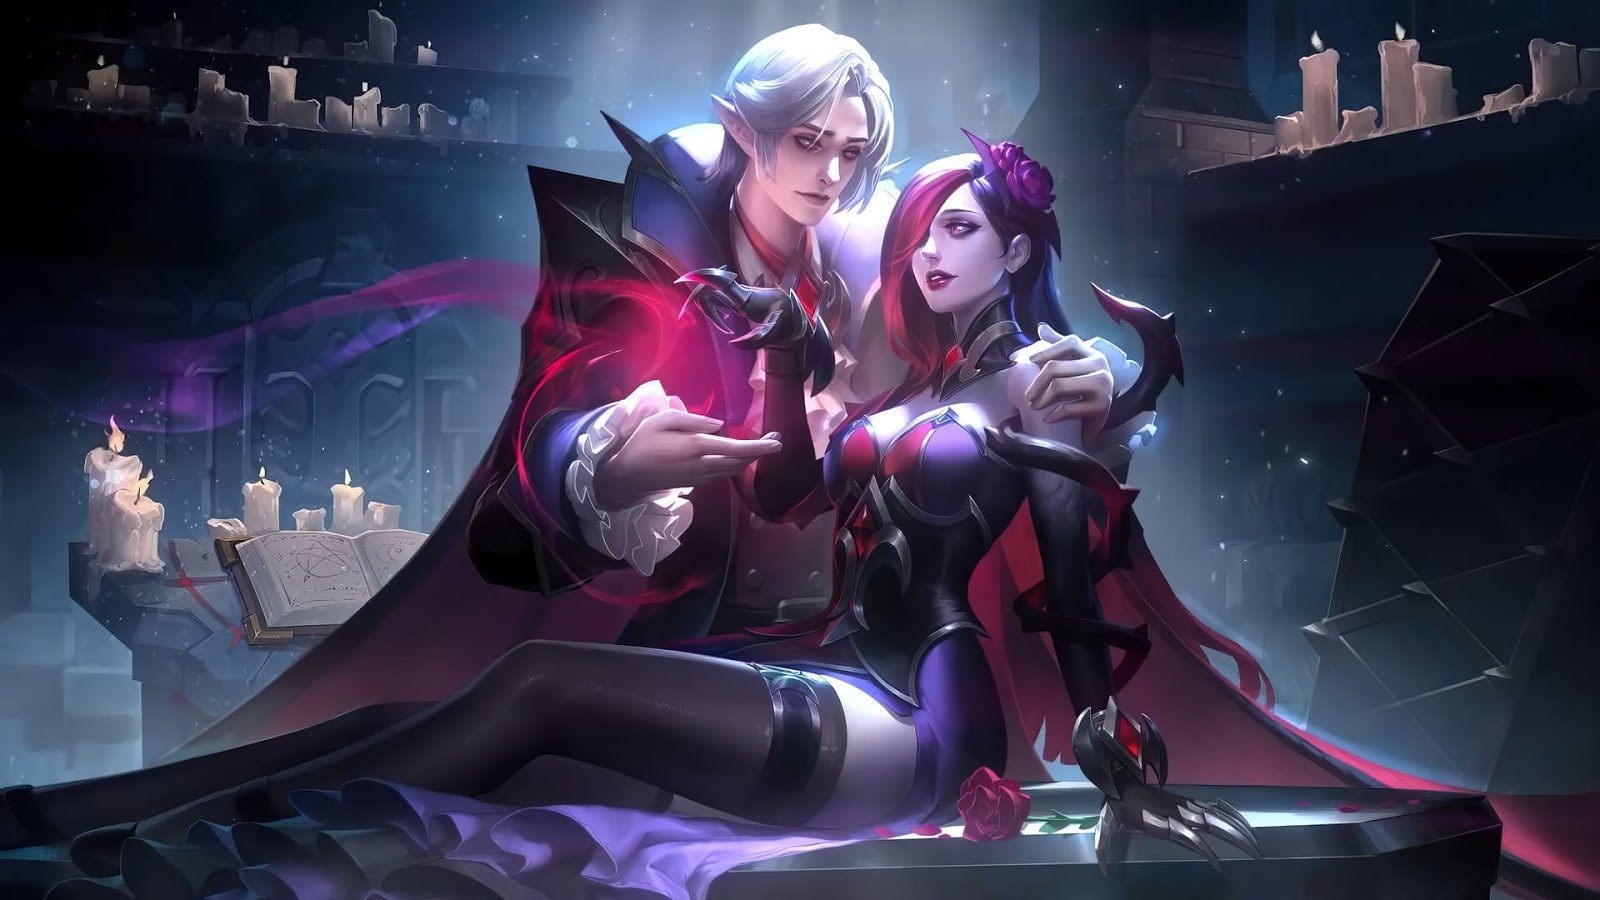 Wallpaper Cecilion and Carmilla Mobile Legends HD for PC